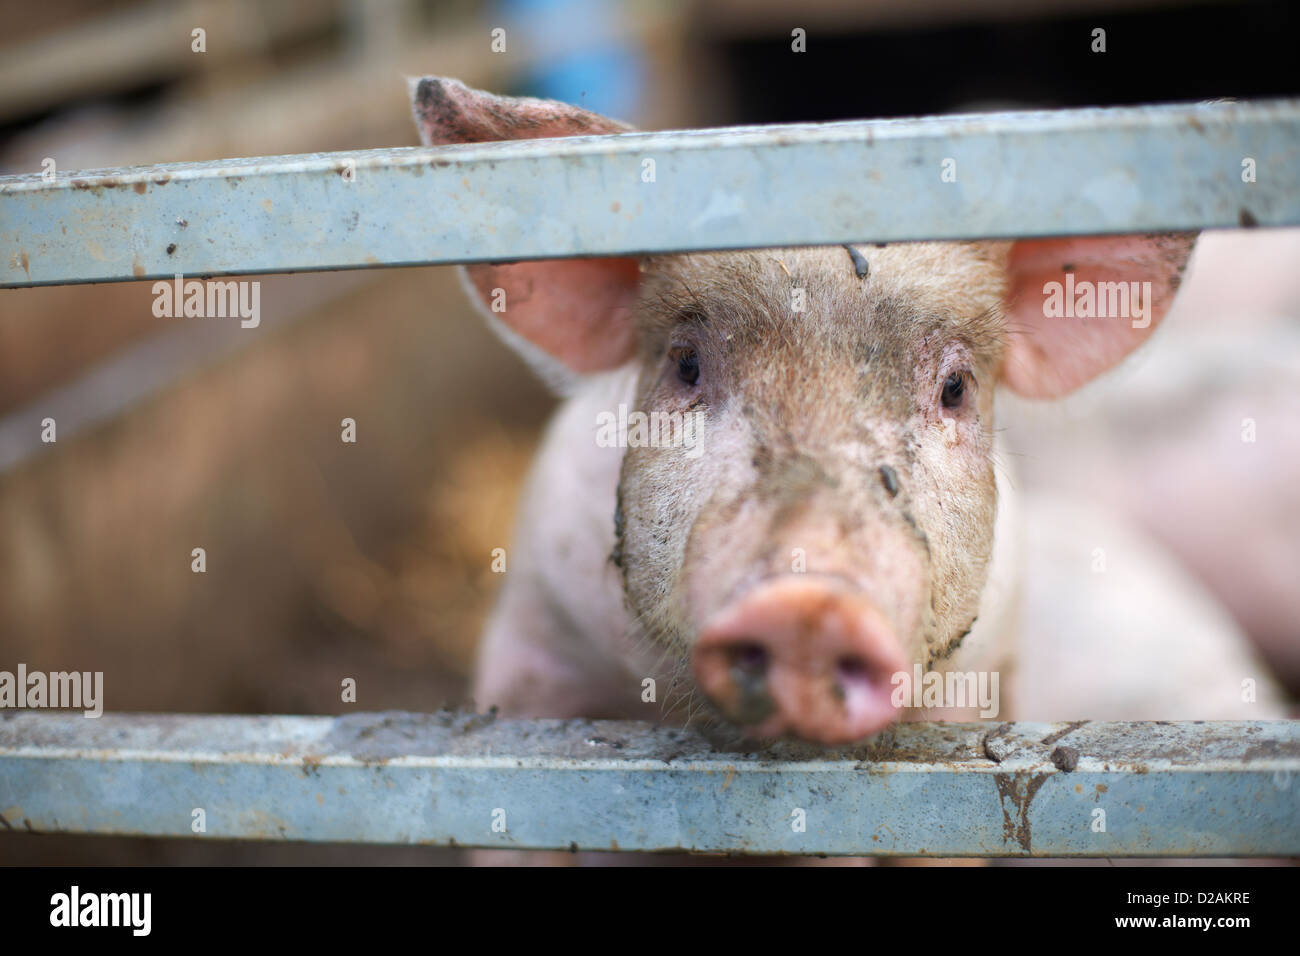 Pig peeking out from behind fence - Stock Image